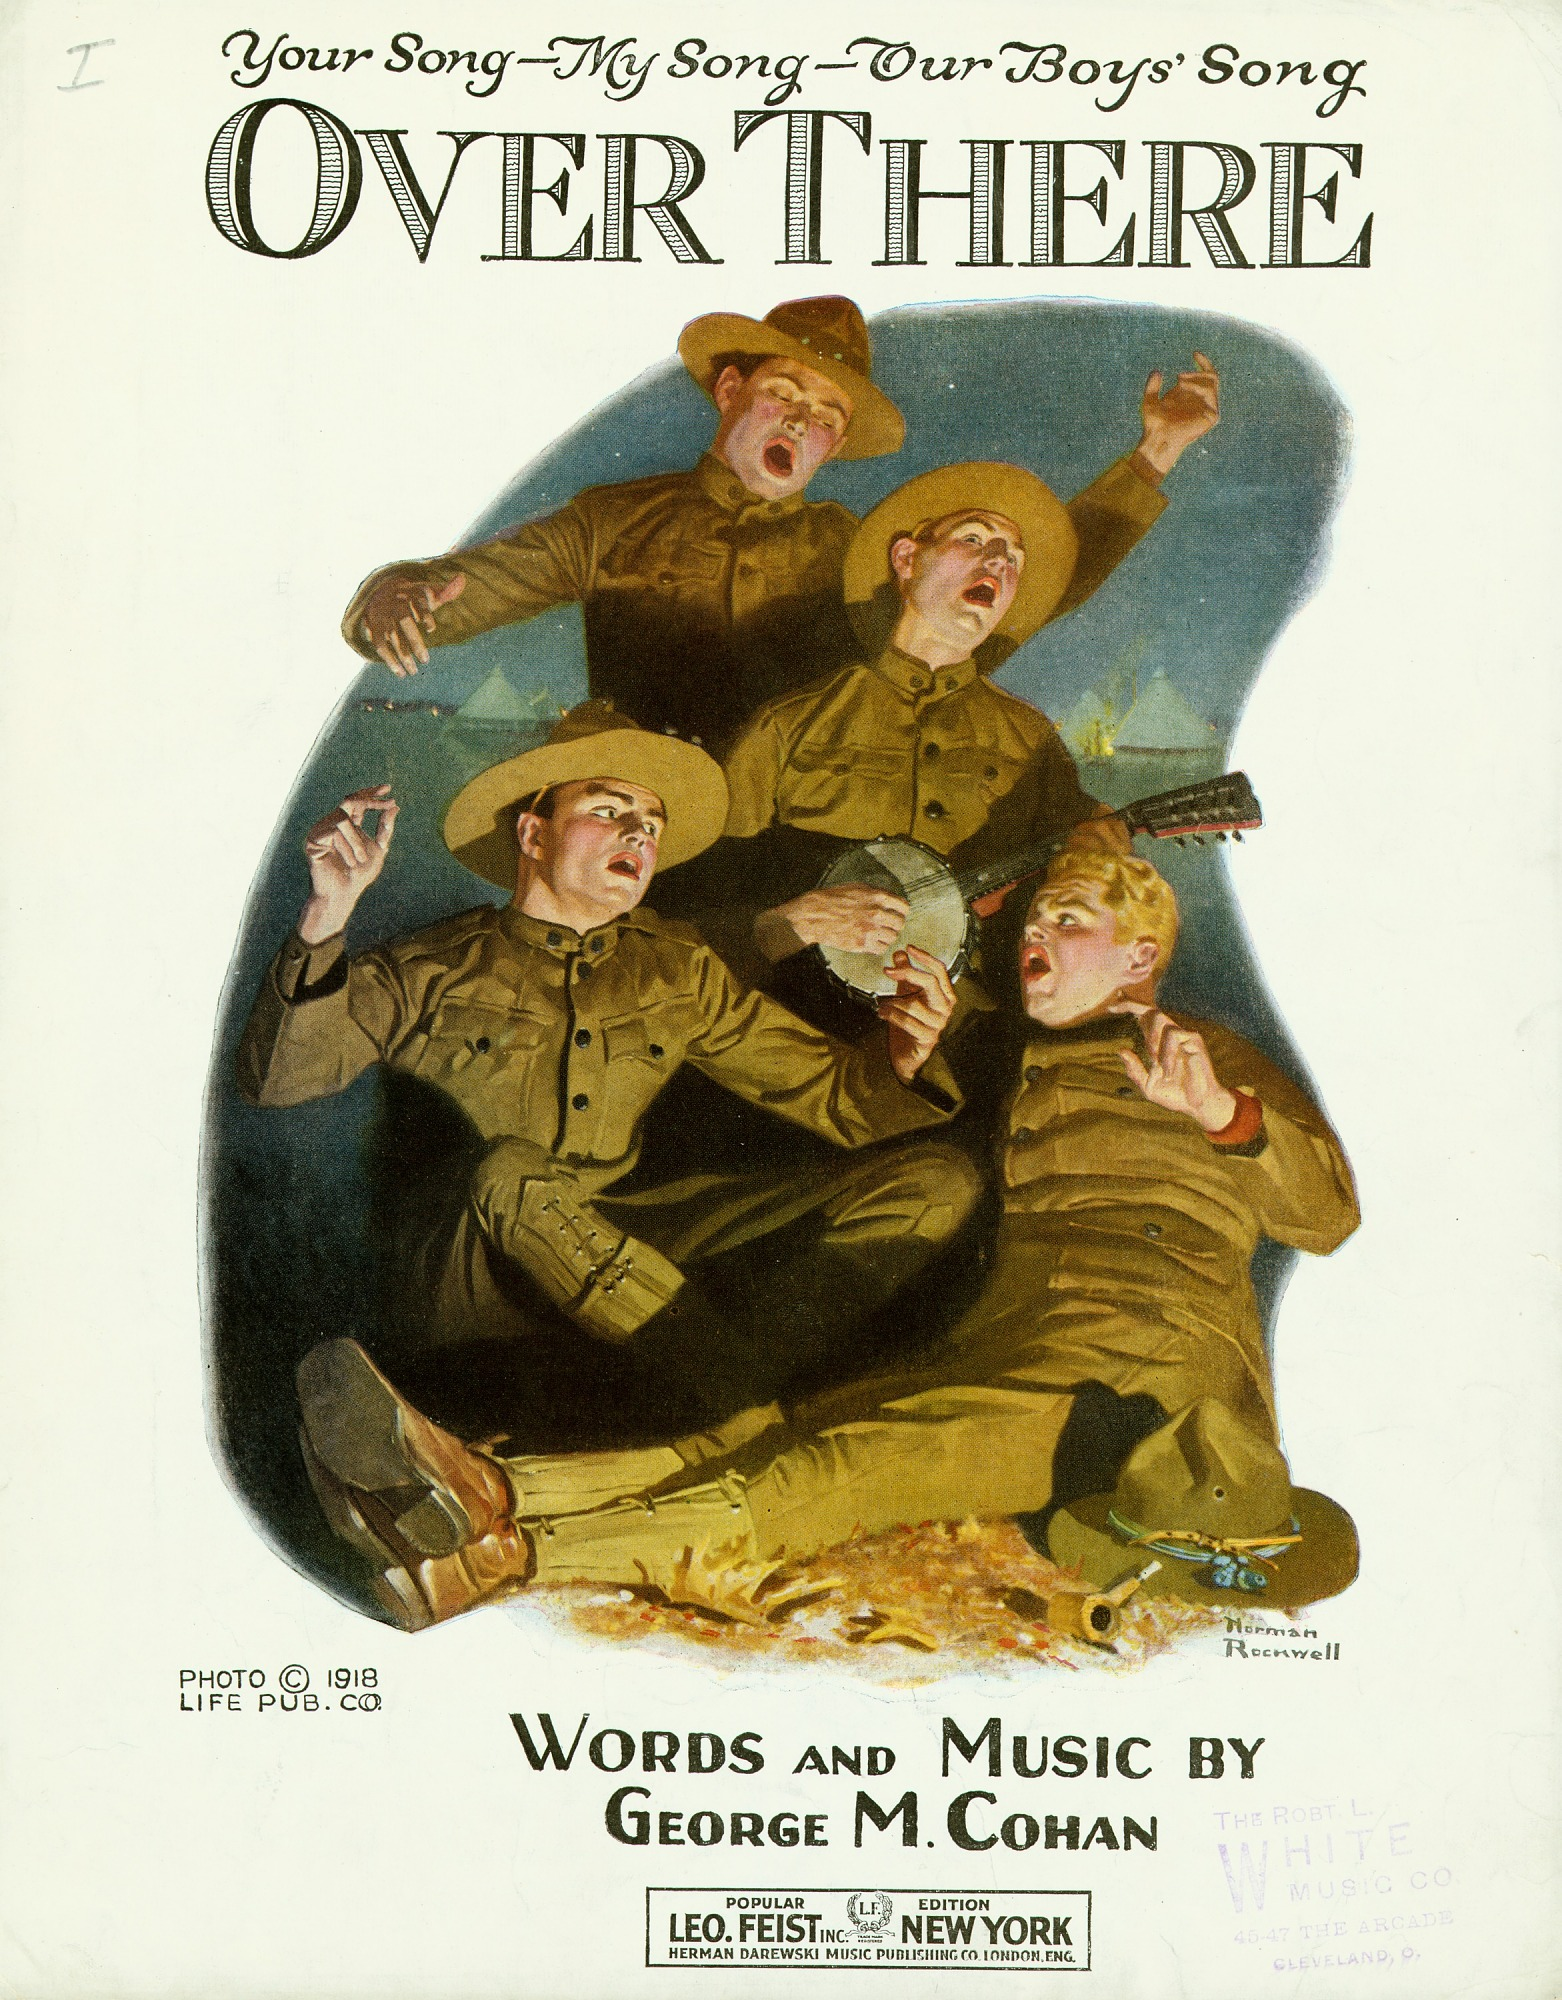 images for Over There with introductory phrase: Your Song--My Song--Our Boys' Song sheet music, 1918